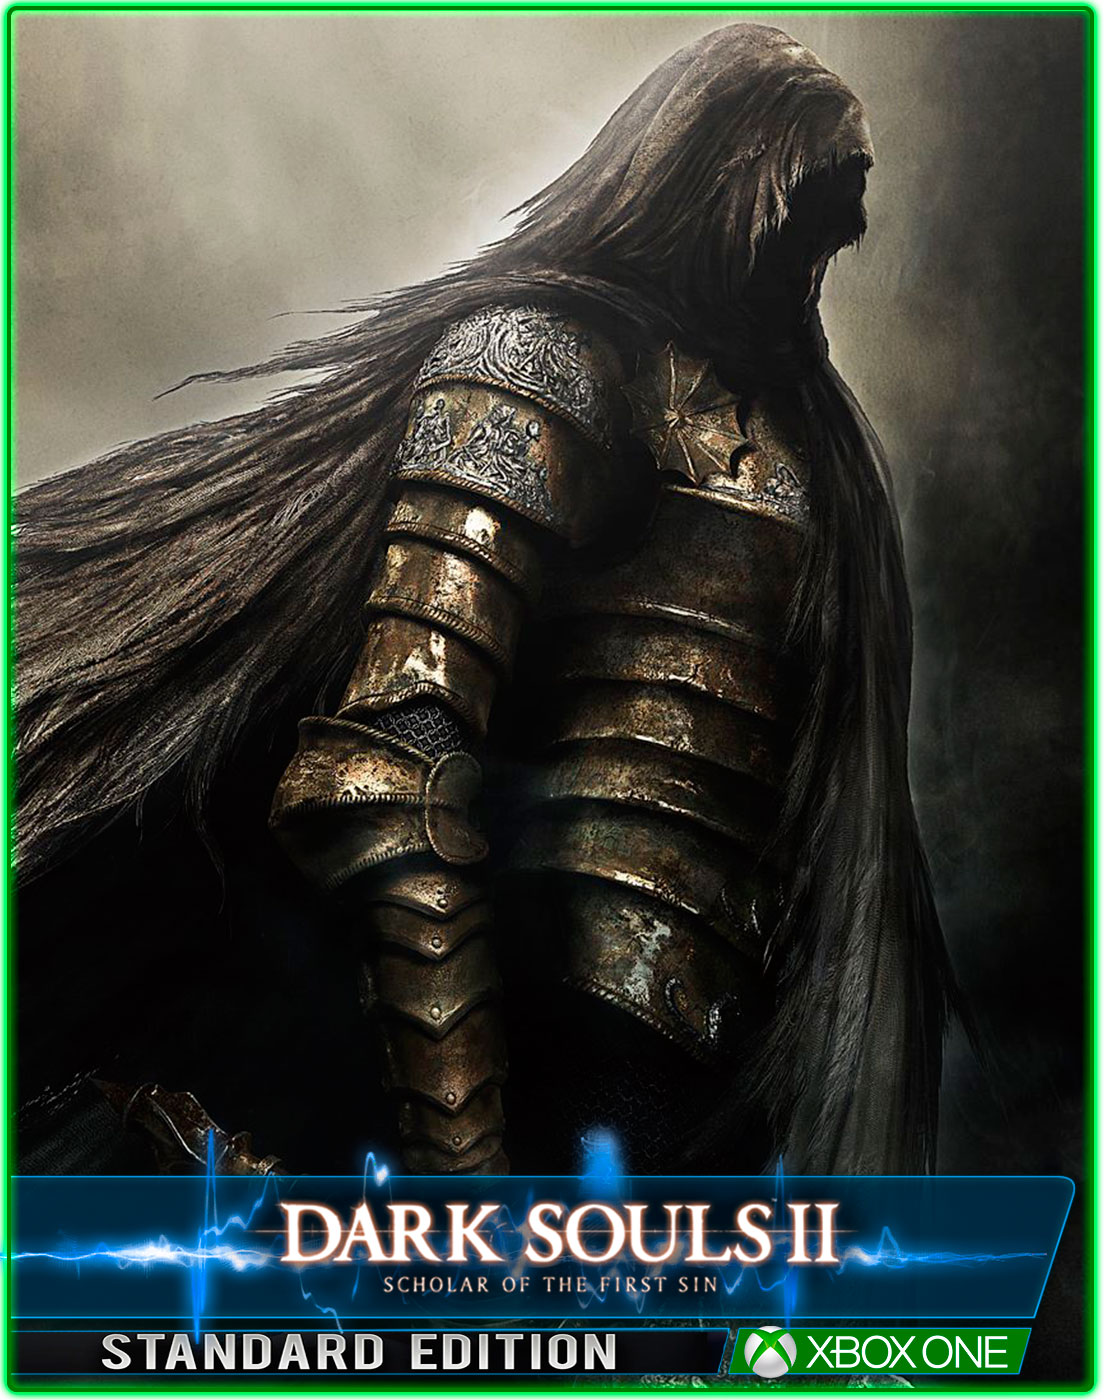 DARK SOULS II Scholar of the First Sin(XBOX ONE)